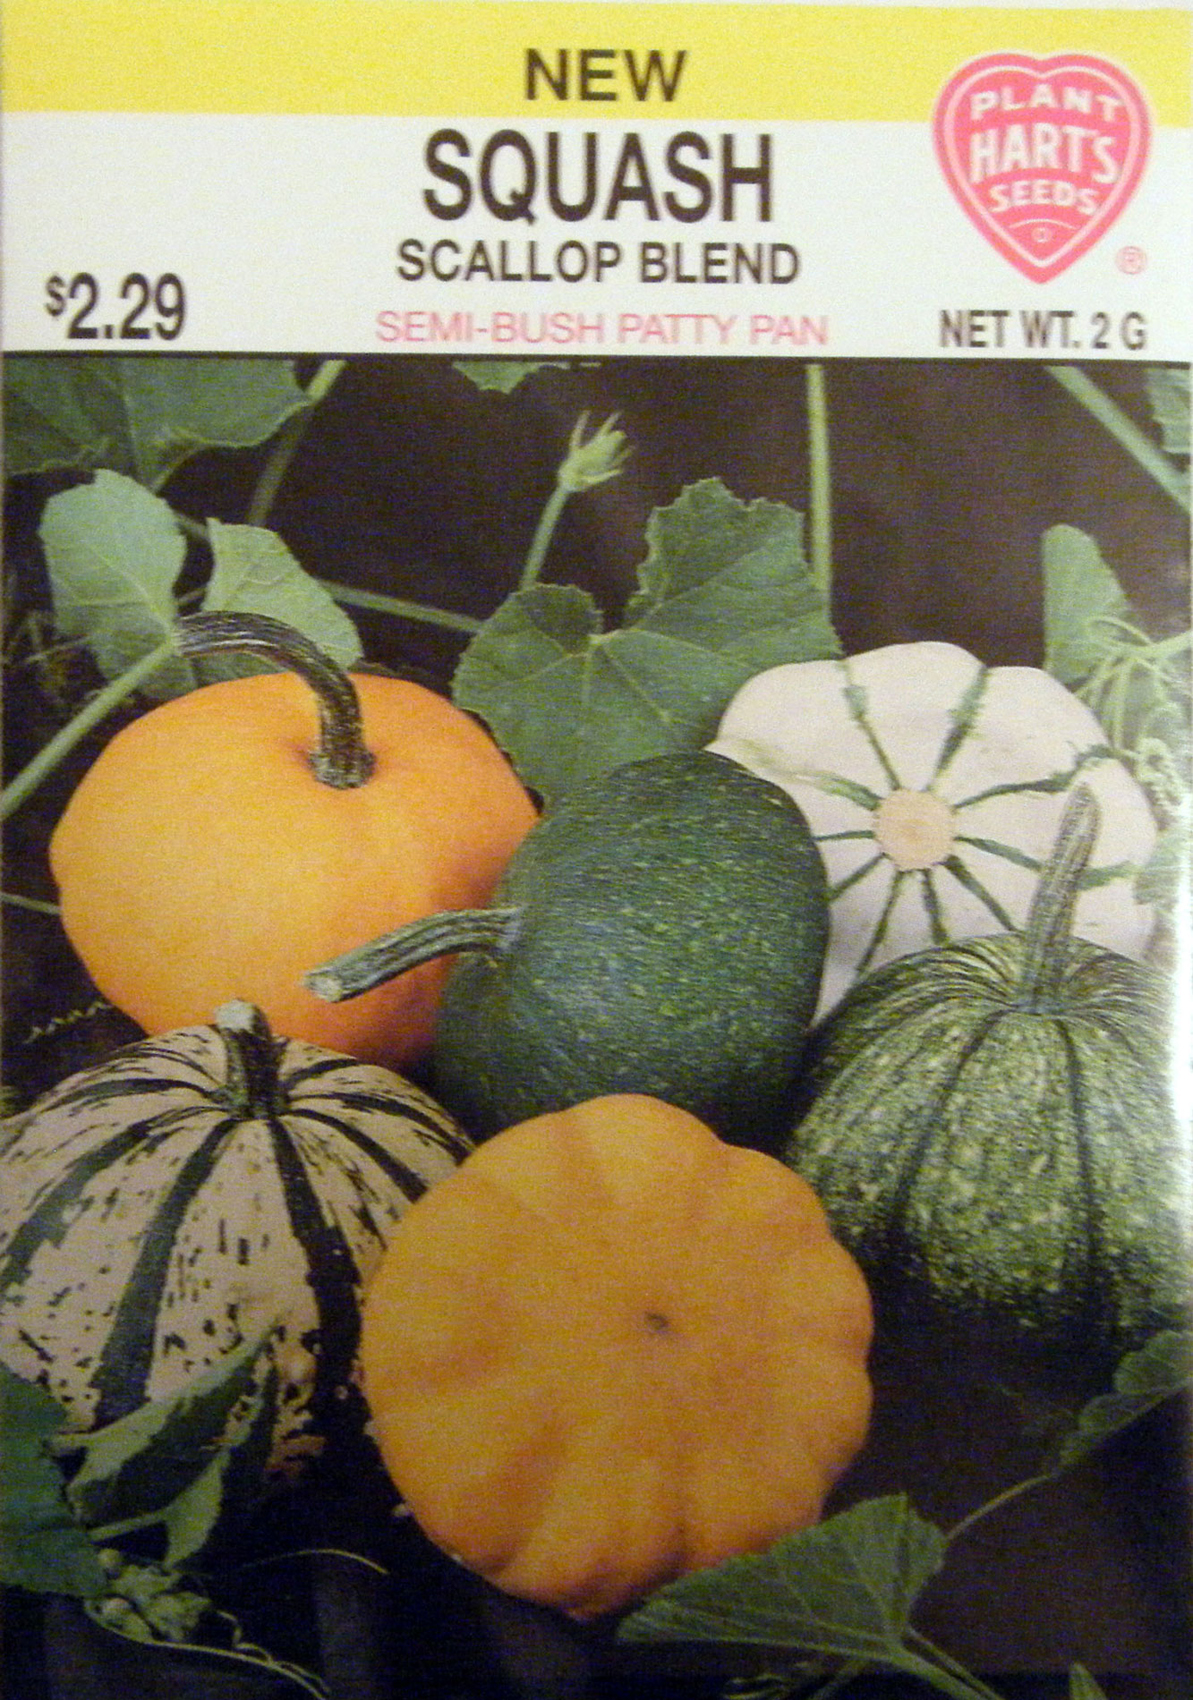 New Variety of Scallop Squash Available